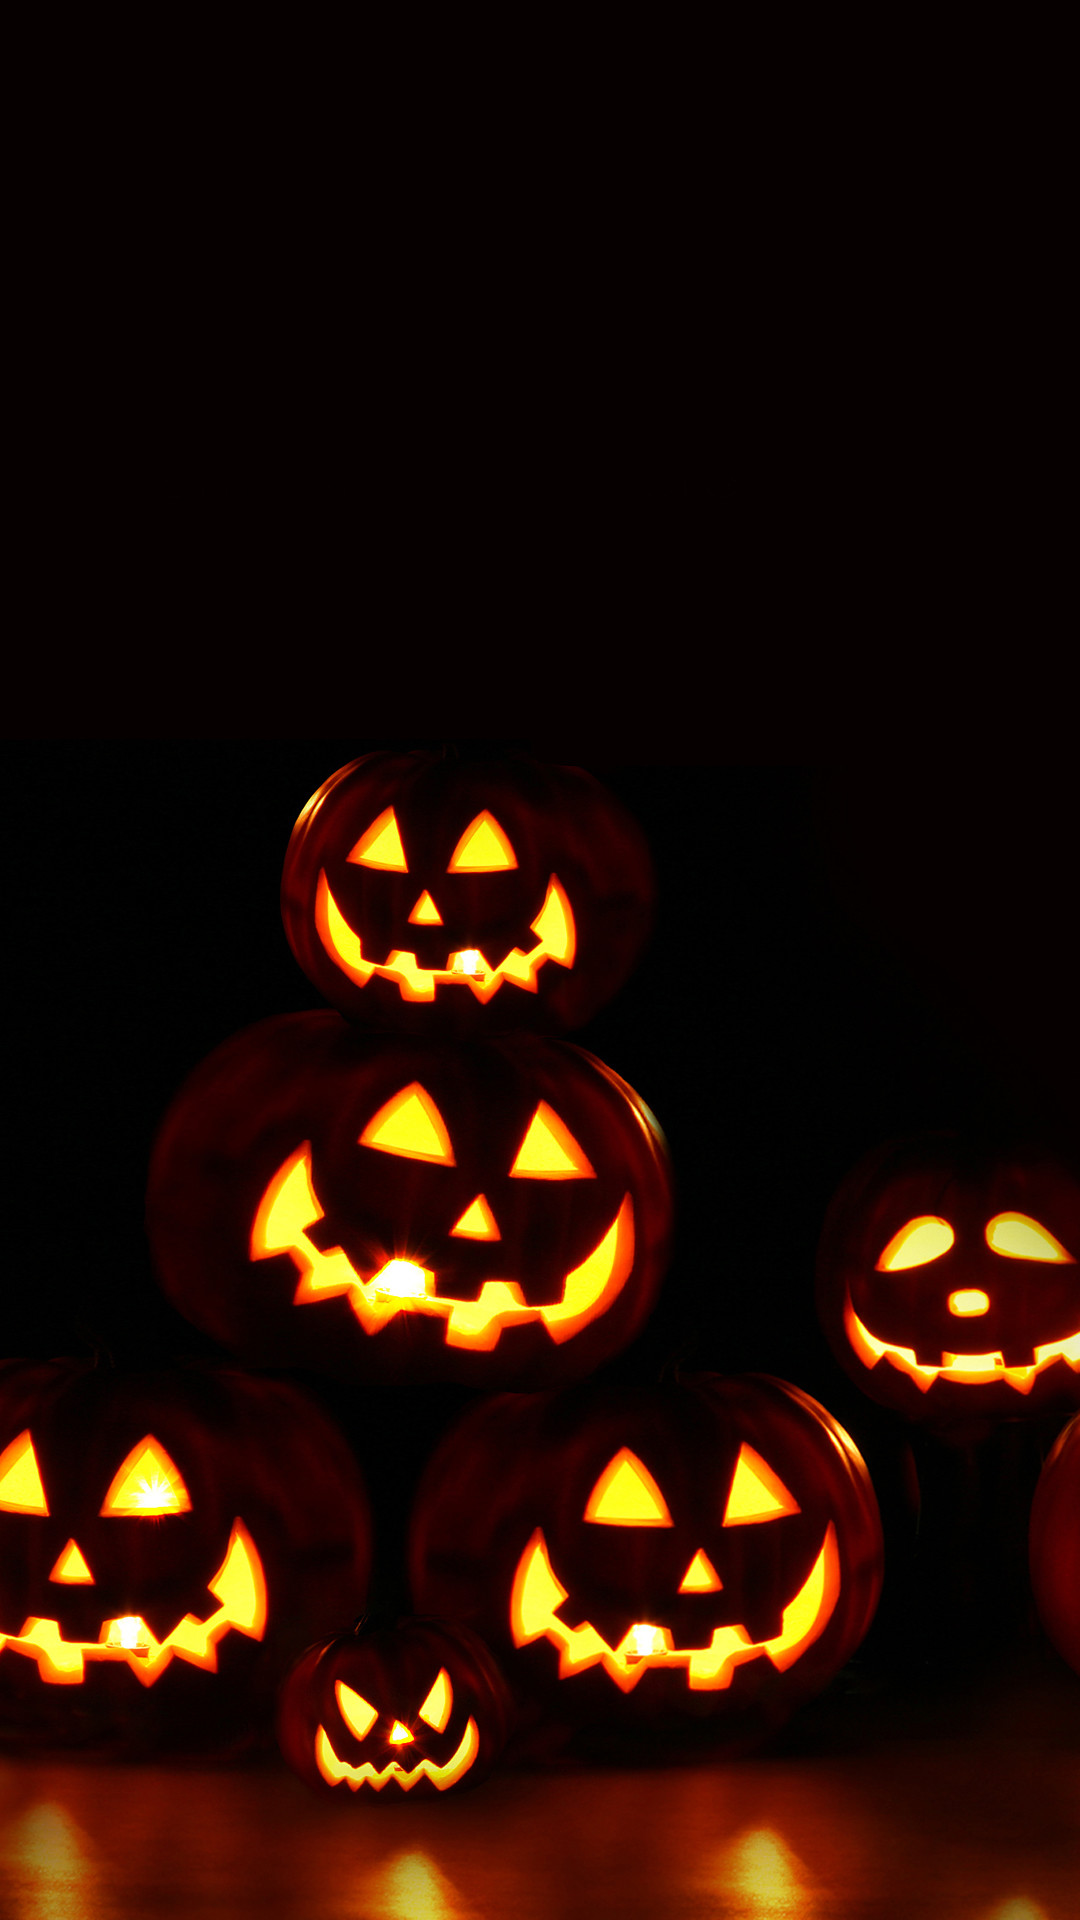 Res: 1080x1920, Scary Pumpkins Halloween Android Wallpaper ...